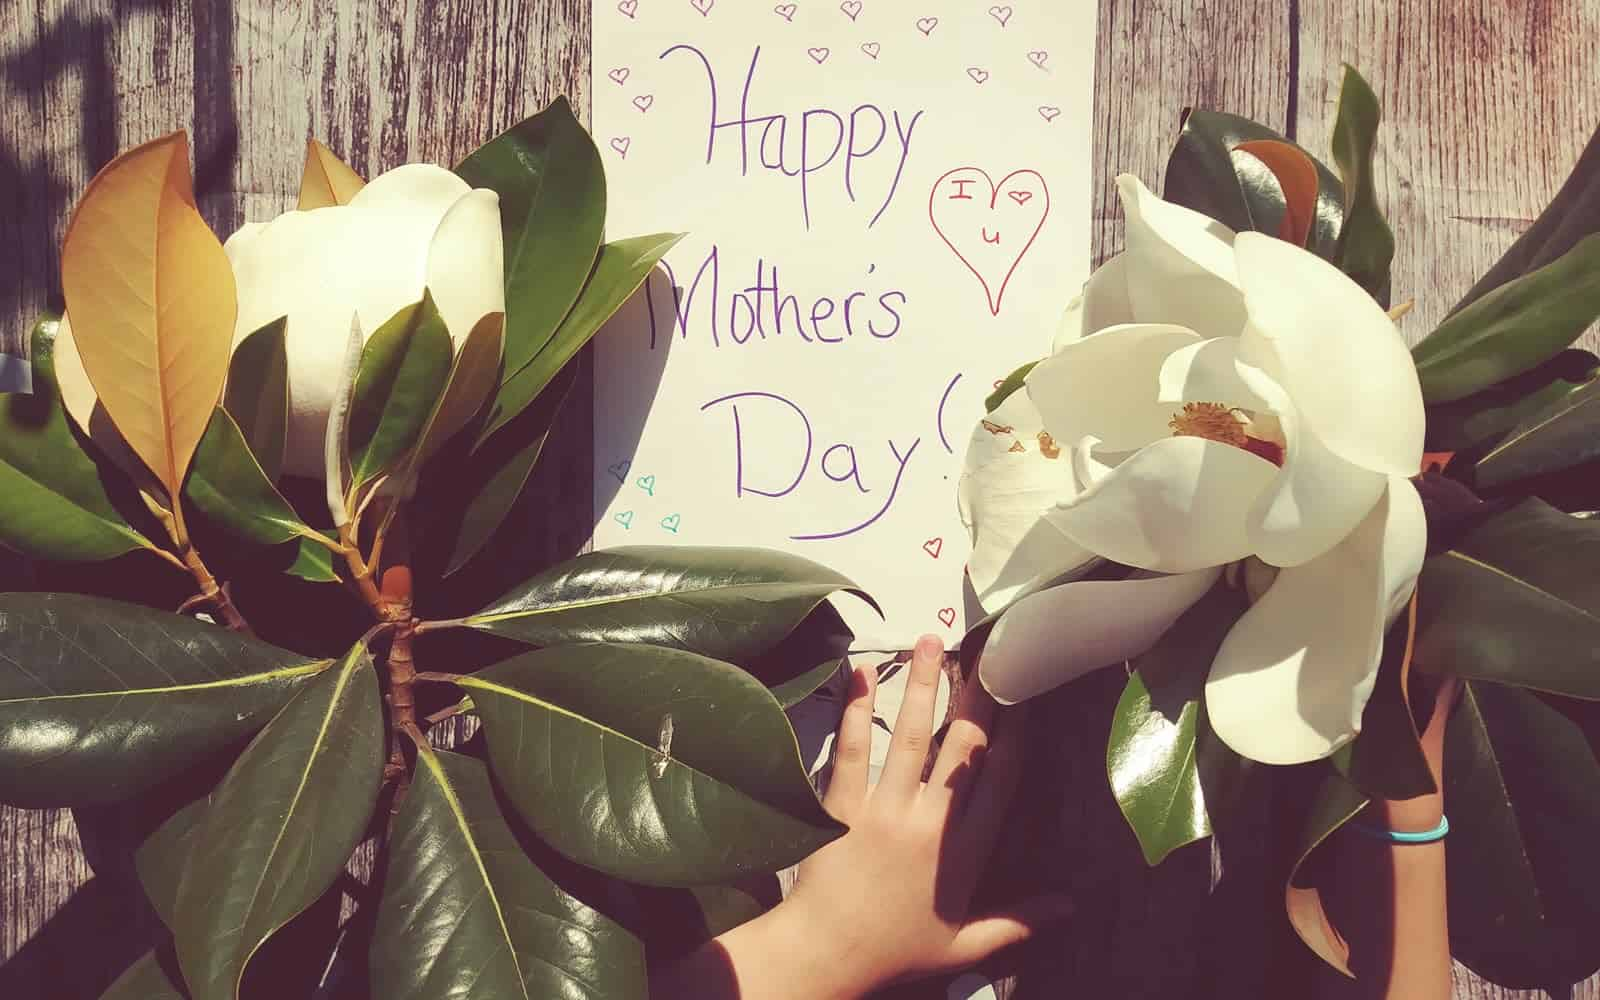 6 Simple Ways to Show Her You Care on Mother's Day